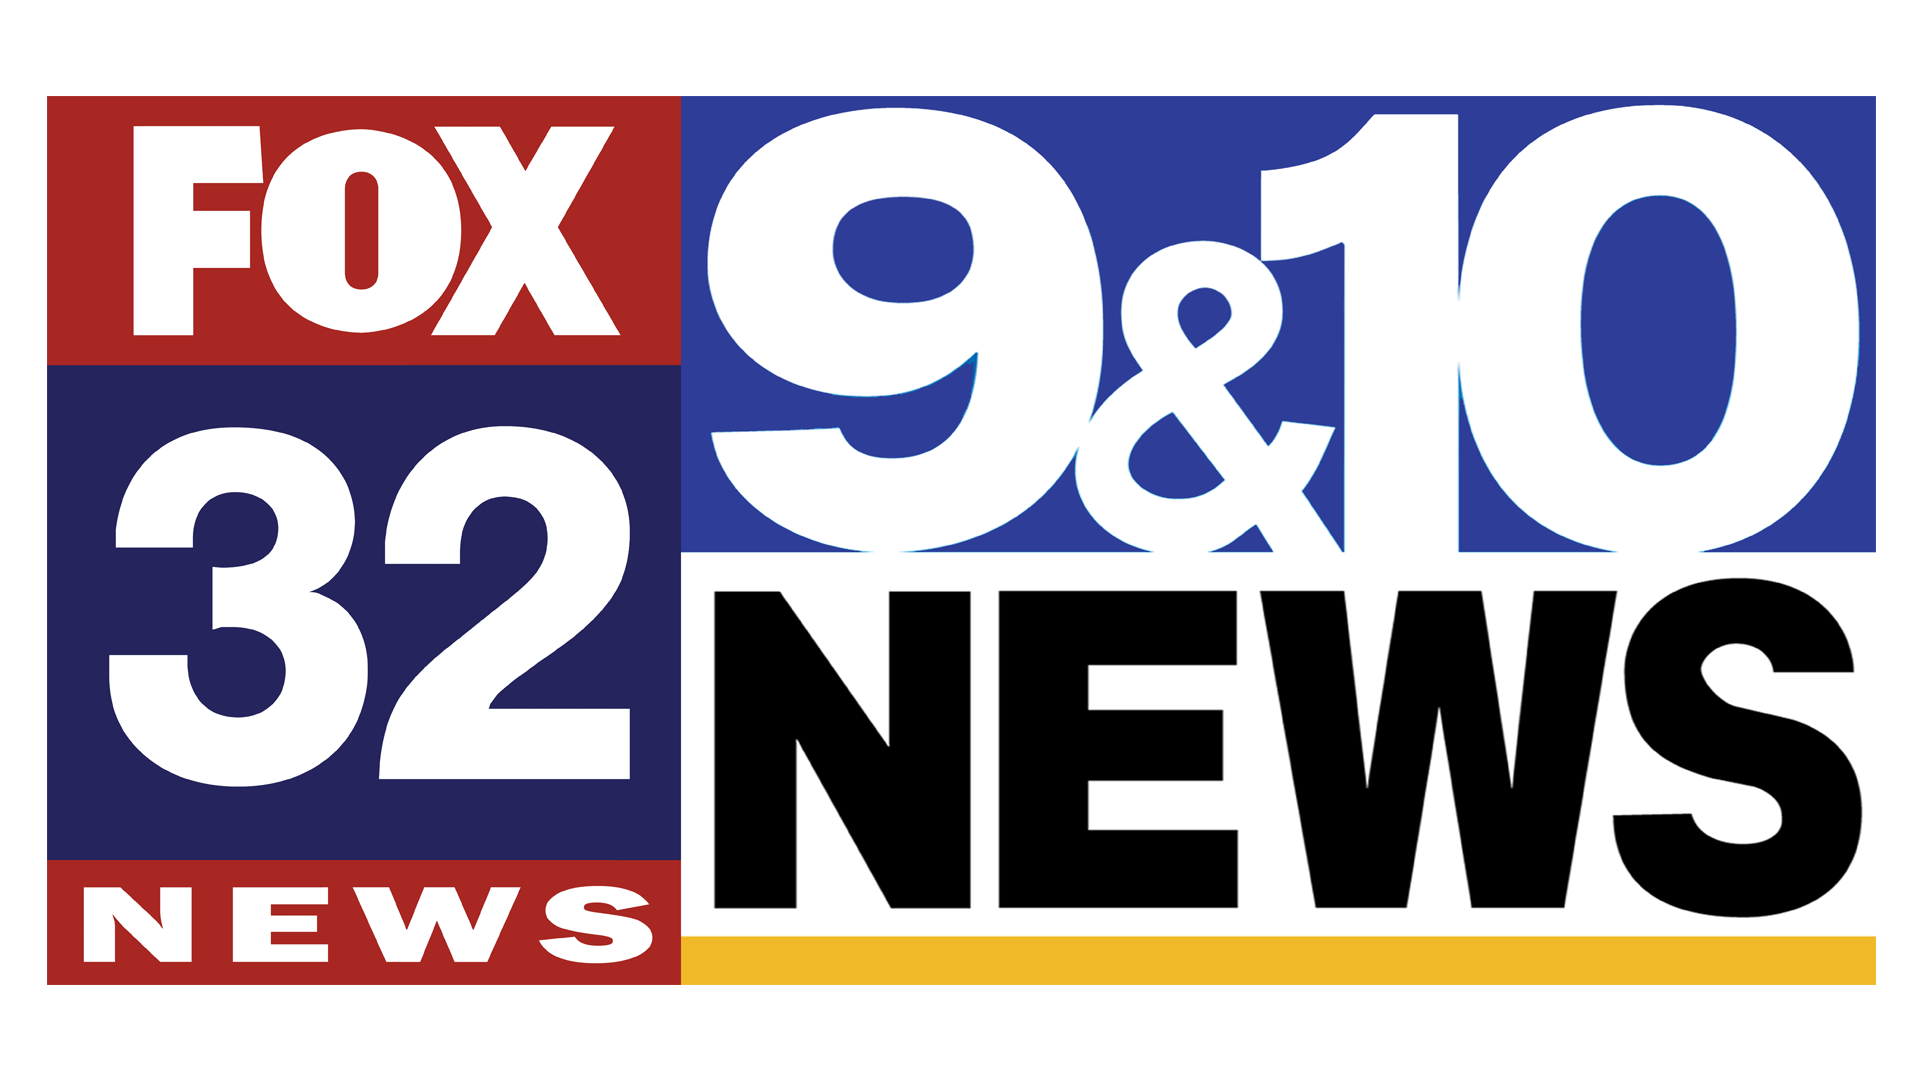 Fow 32 News 9 and 10 News Logo